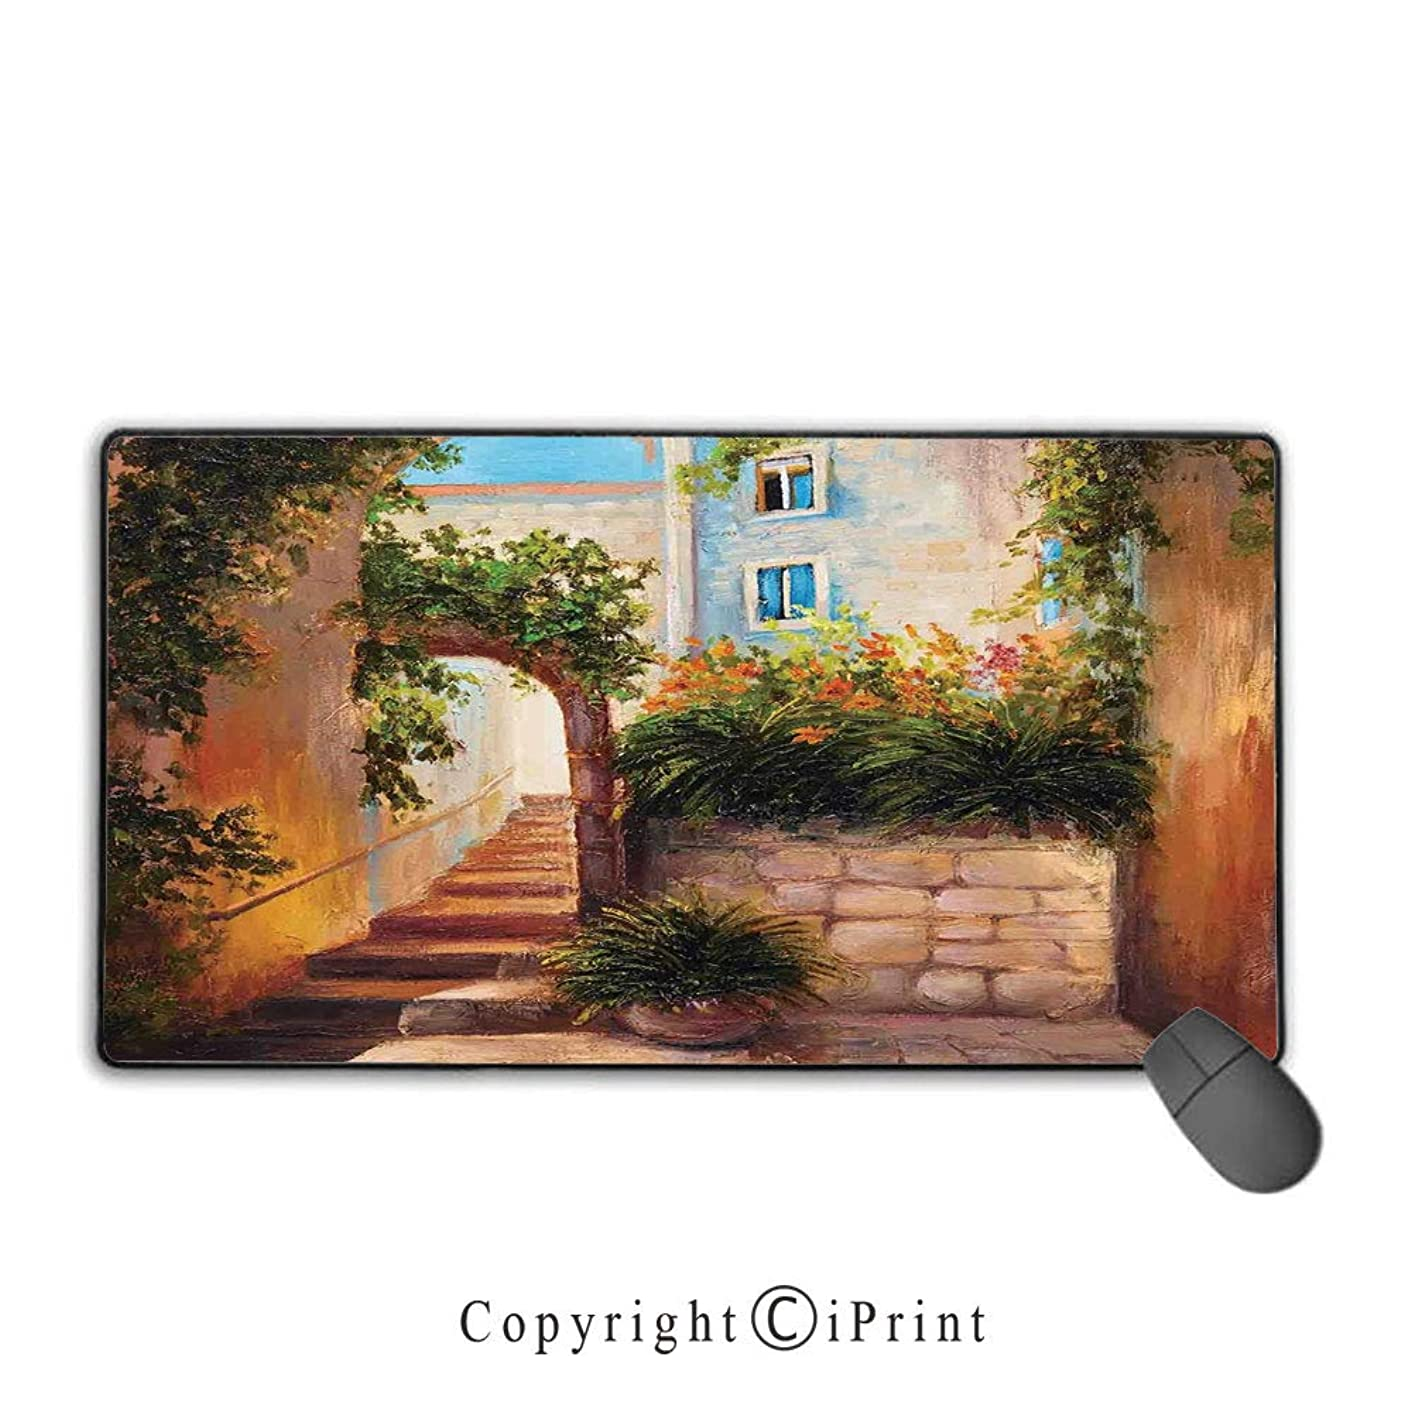 Extended Mousepad with Durable Stitched Edges,Rustic,Stone Street Gate in an Old Town with Blooming Flowers Oil Painting,Dark Orange Dark Green, Suitable for Offices and Homes,15.8